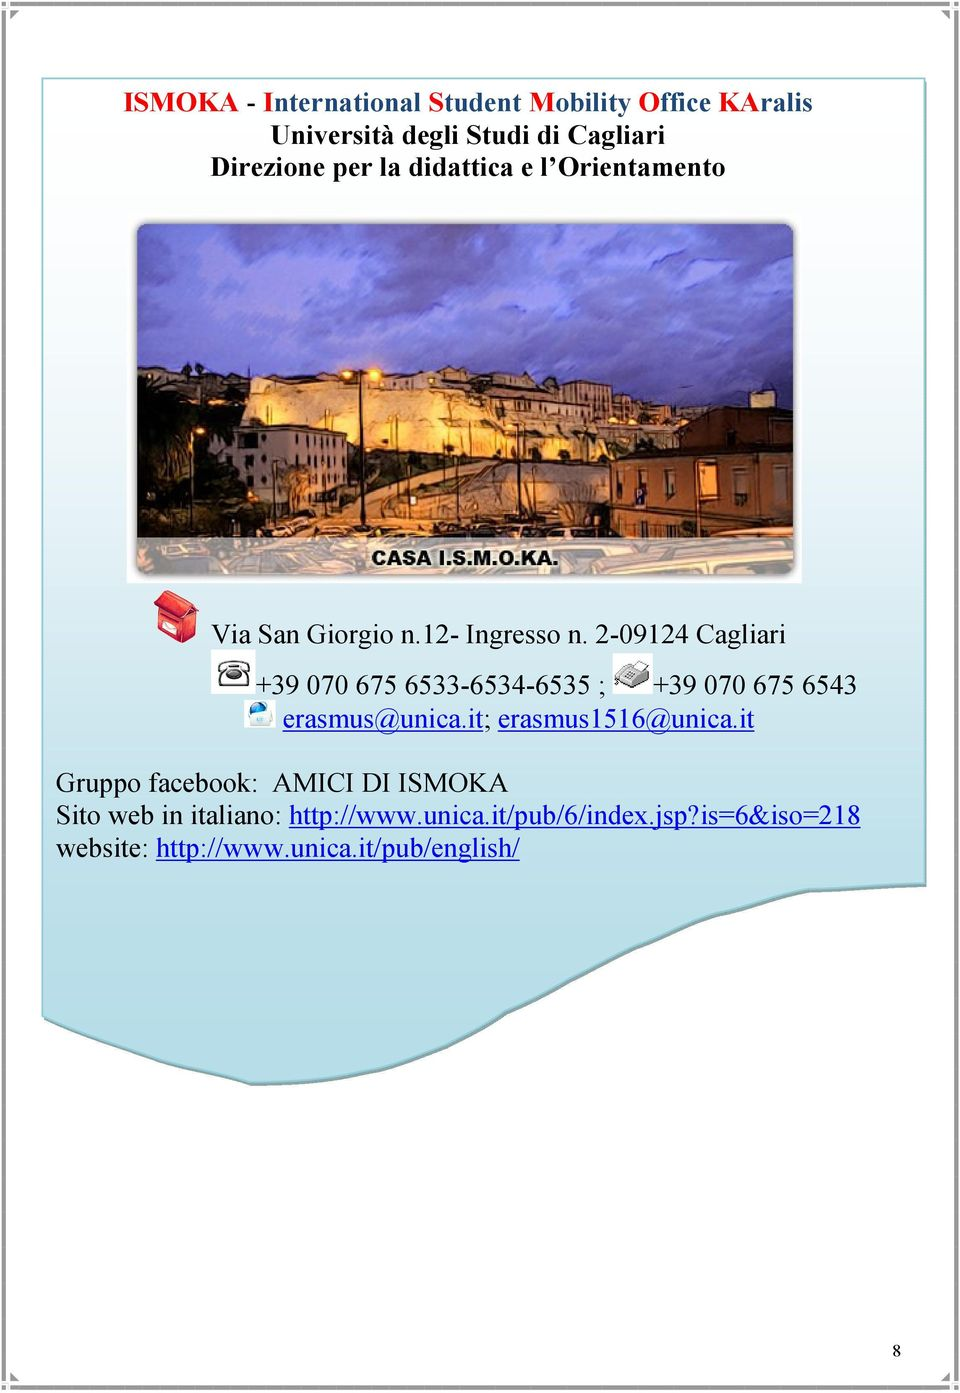 2-09124 Cagliari +39 070 675 6533-6534-6535 ; +39 070 675 6543 erasmus@unica.it; erasmus1516@unica.